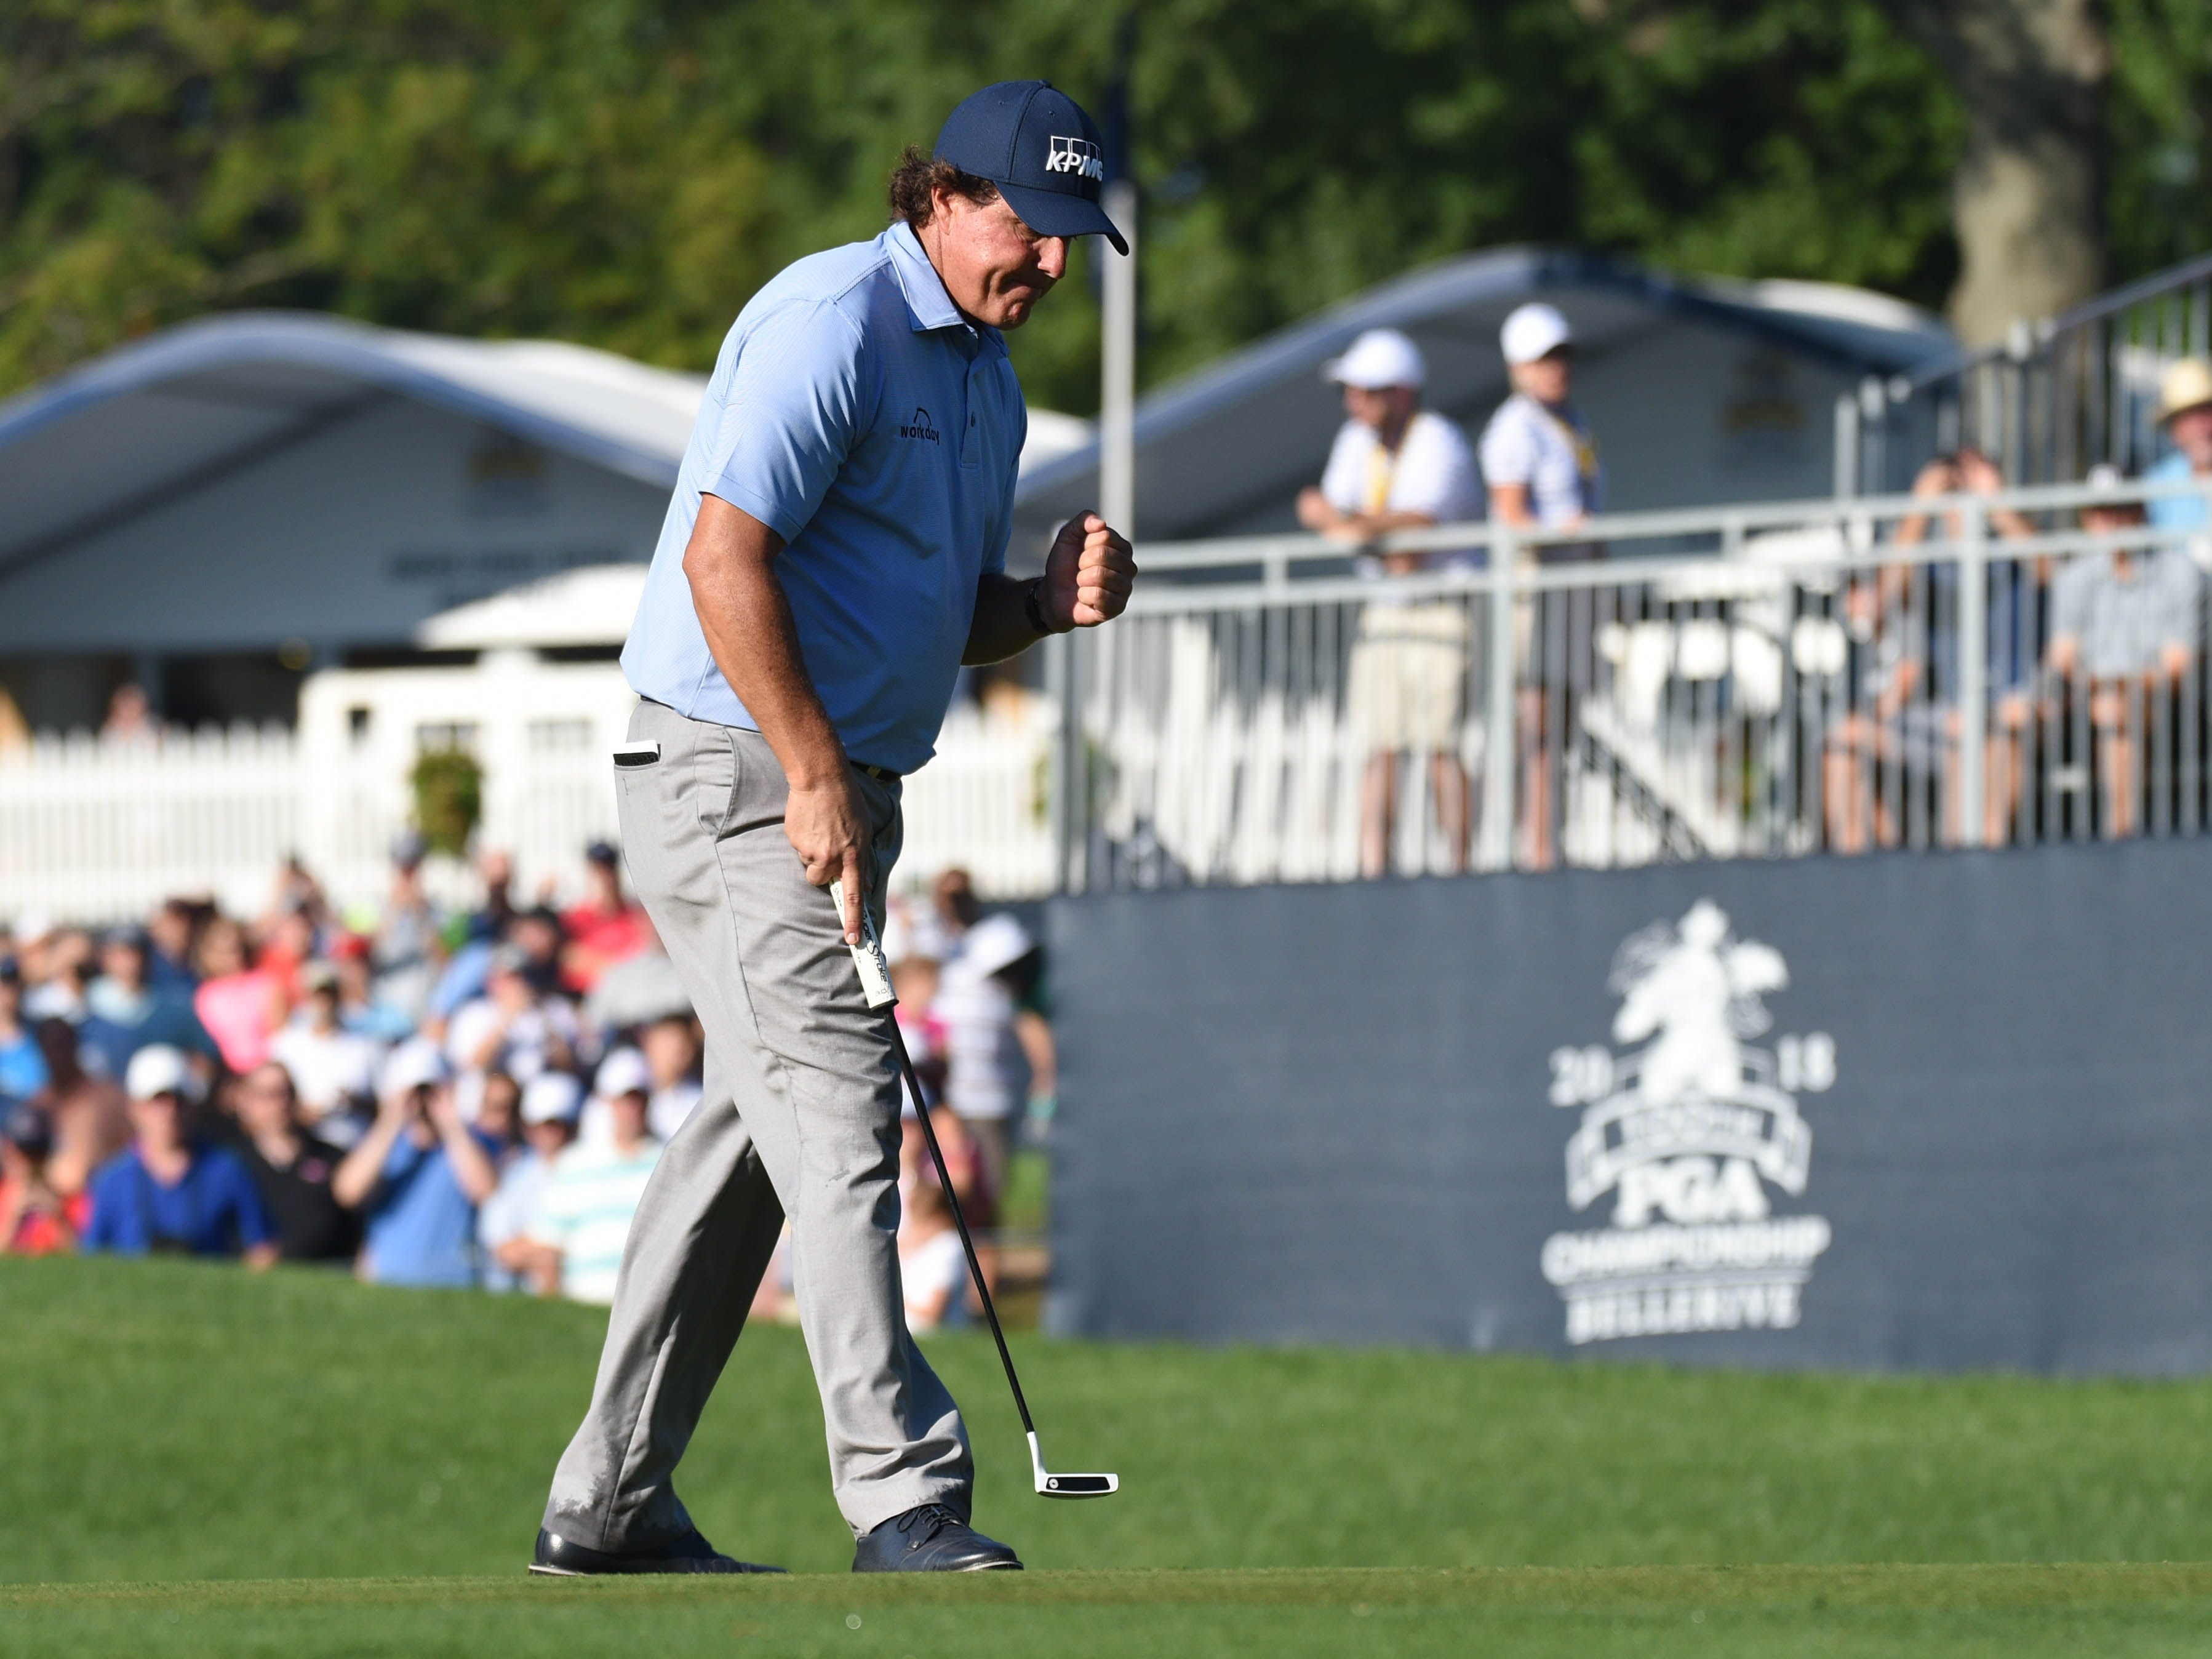 Phil Mickelson reacts after putting on the 10th green during the first round.